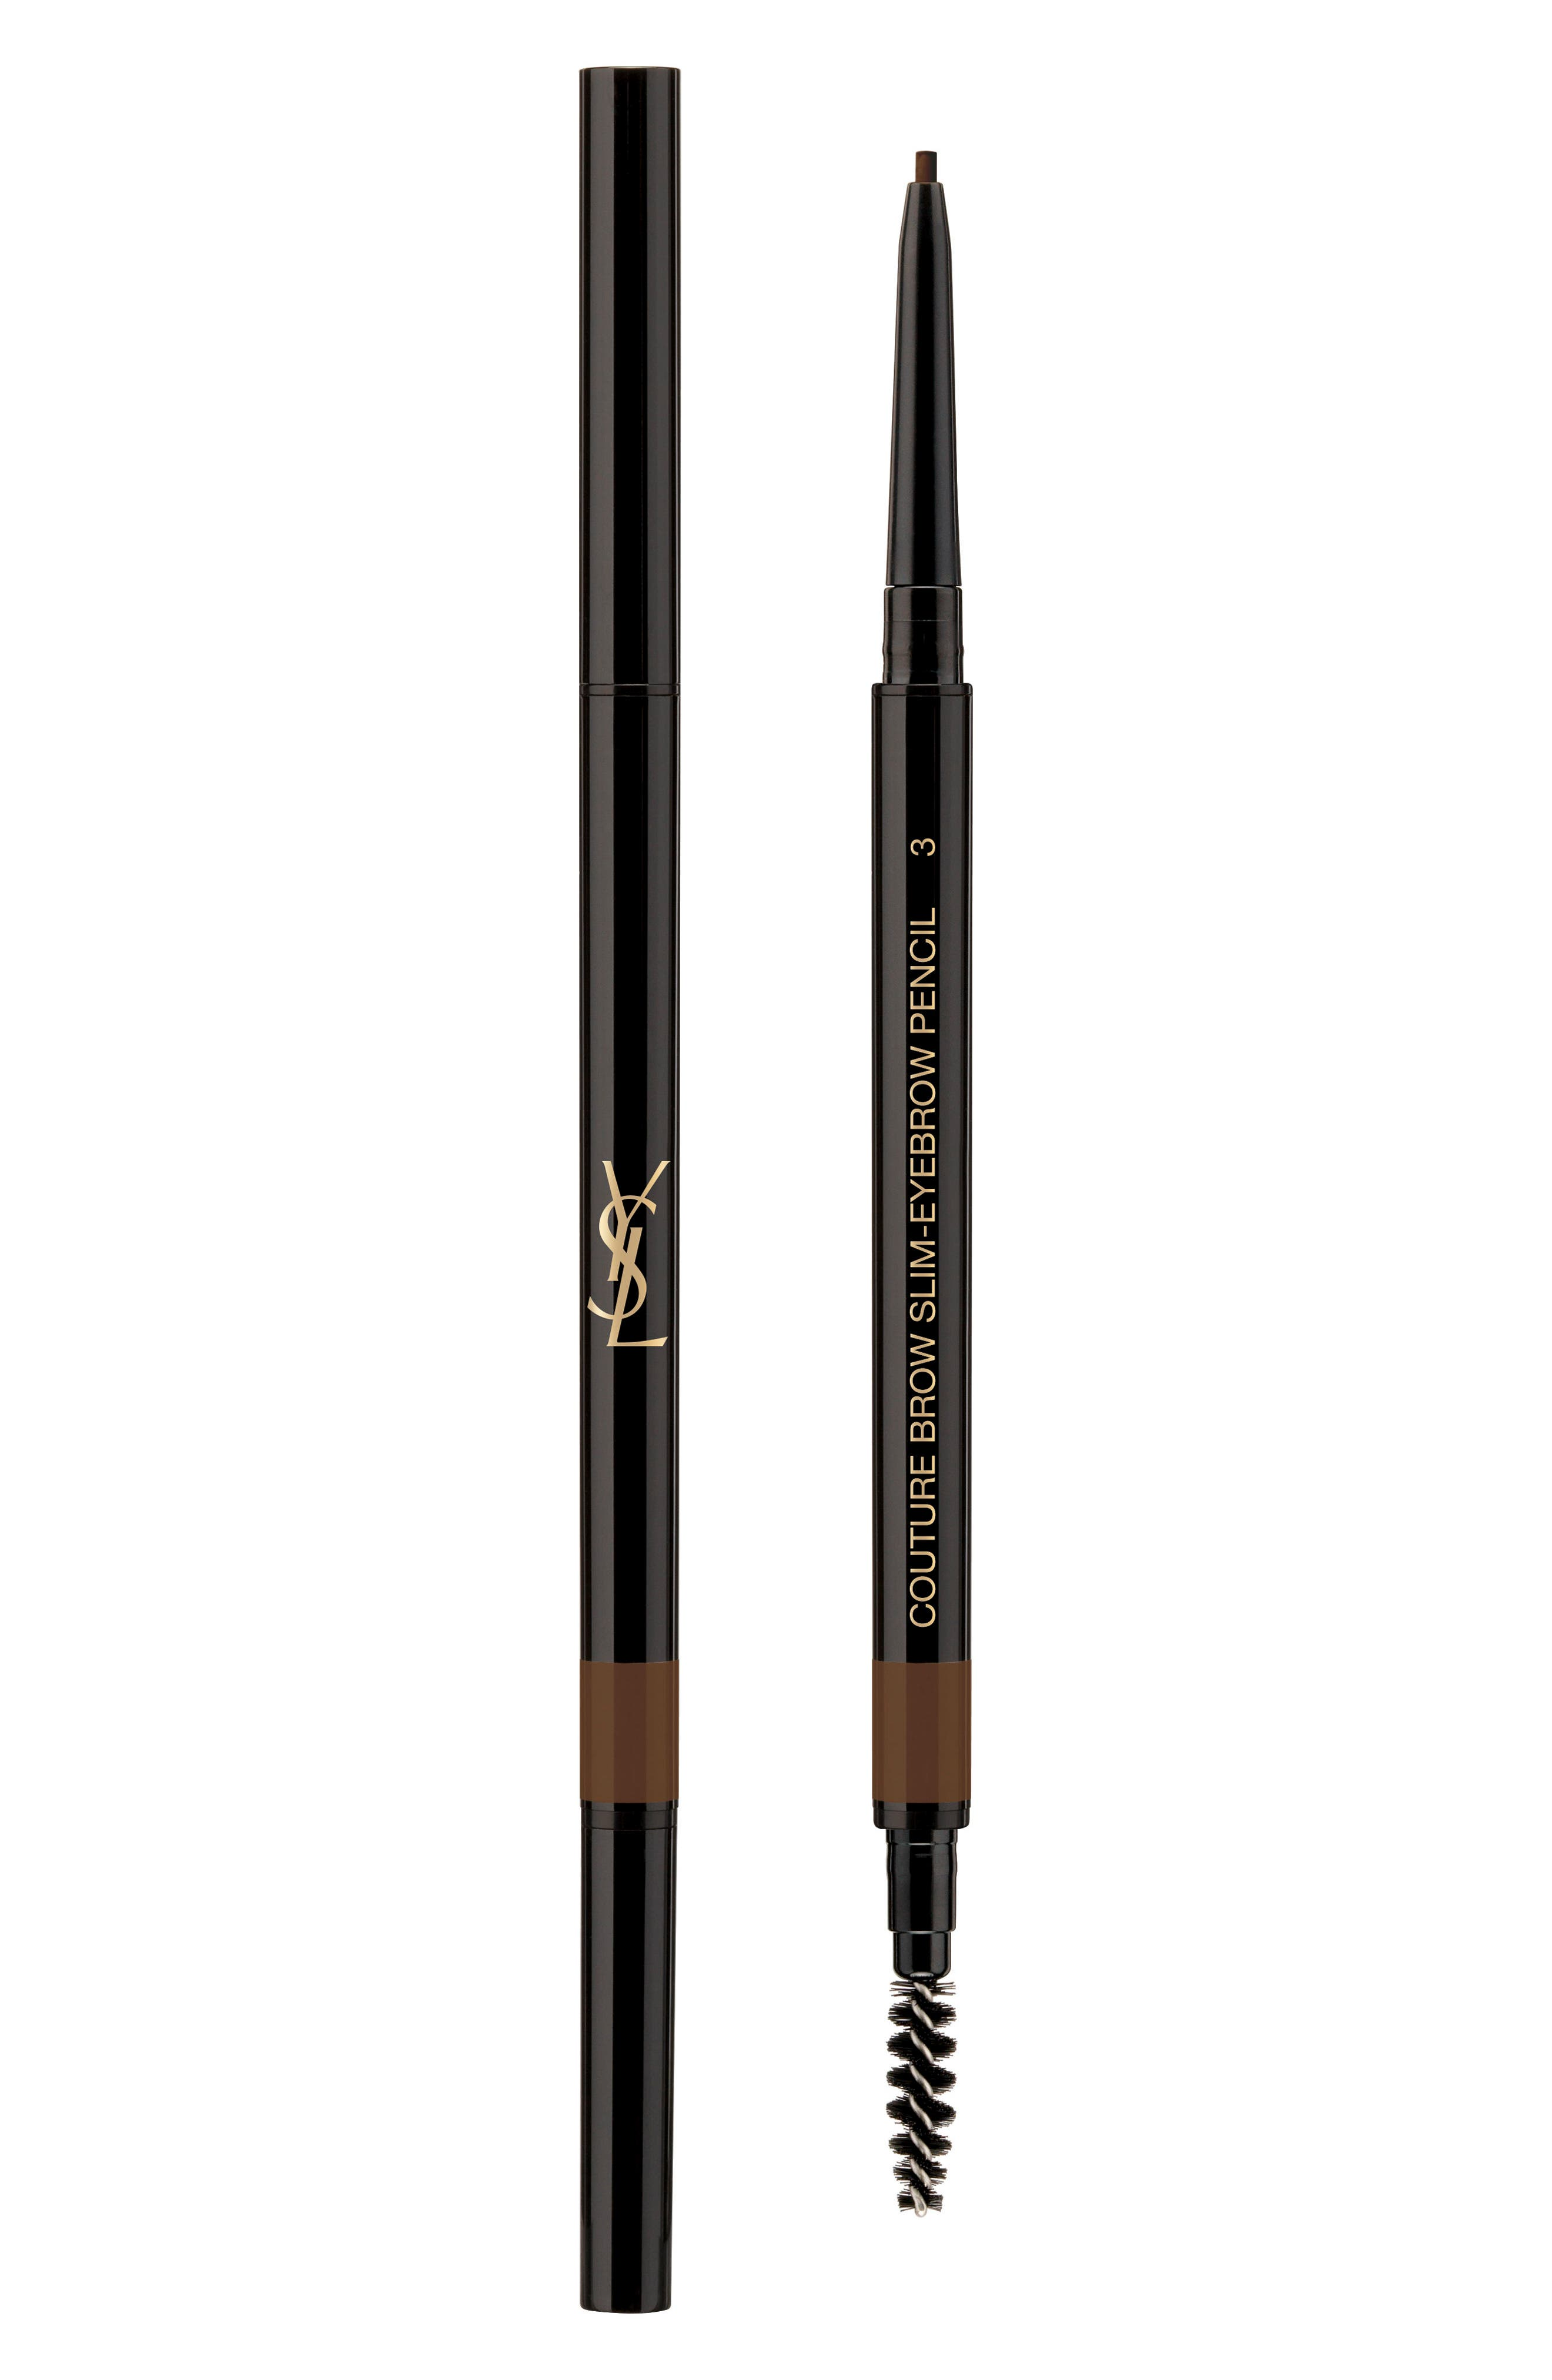 Yves Saint Laurent Couture Brow Slim Eyebrow Pencil - 03 Soft Brown